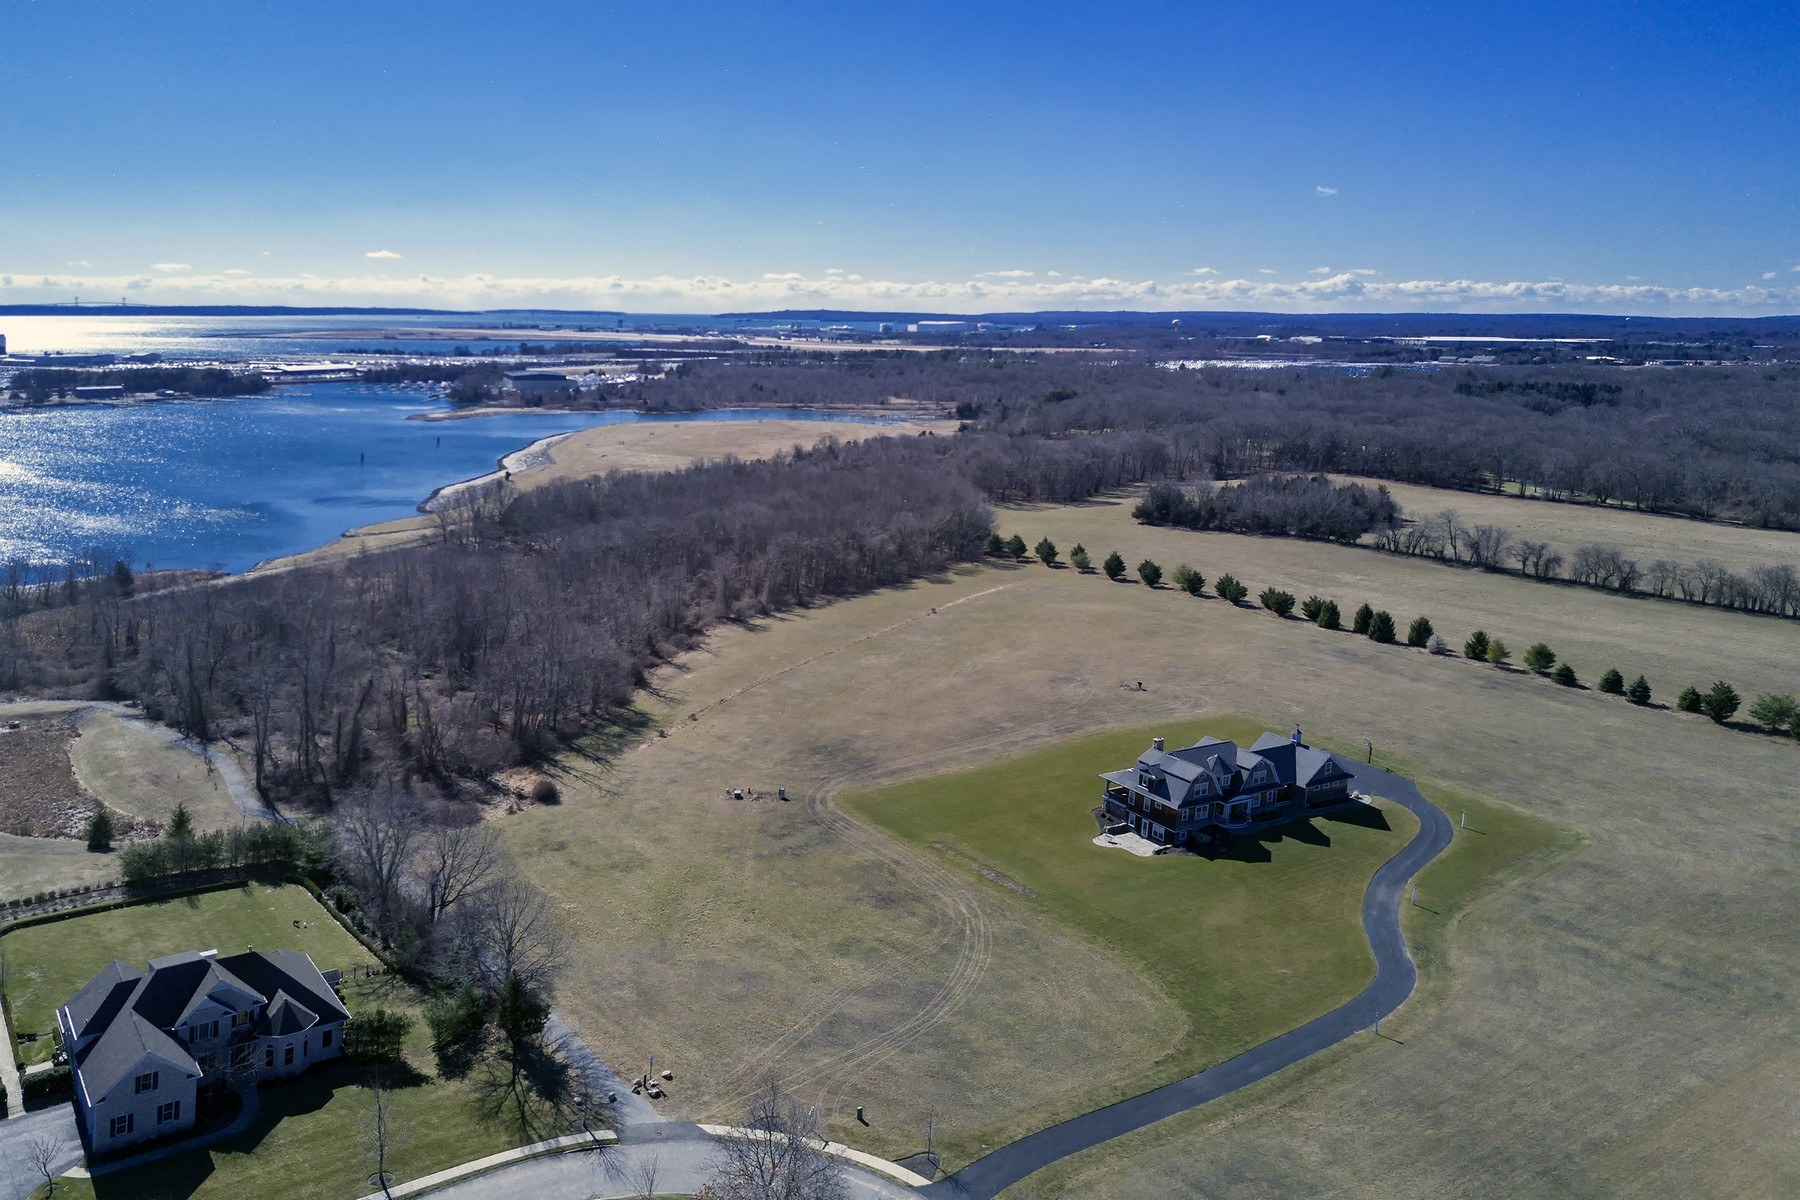 Land for Sale at 318 Wilbert Way, North Kingstown, RI North Kingstown, Rhode Island 02852 United States